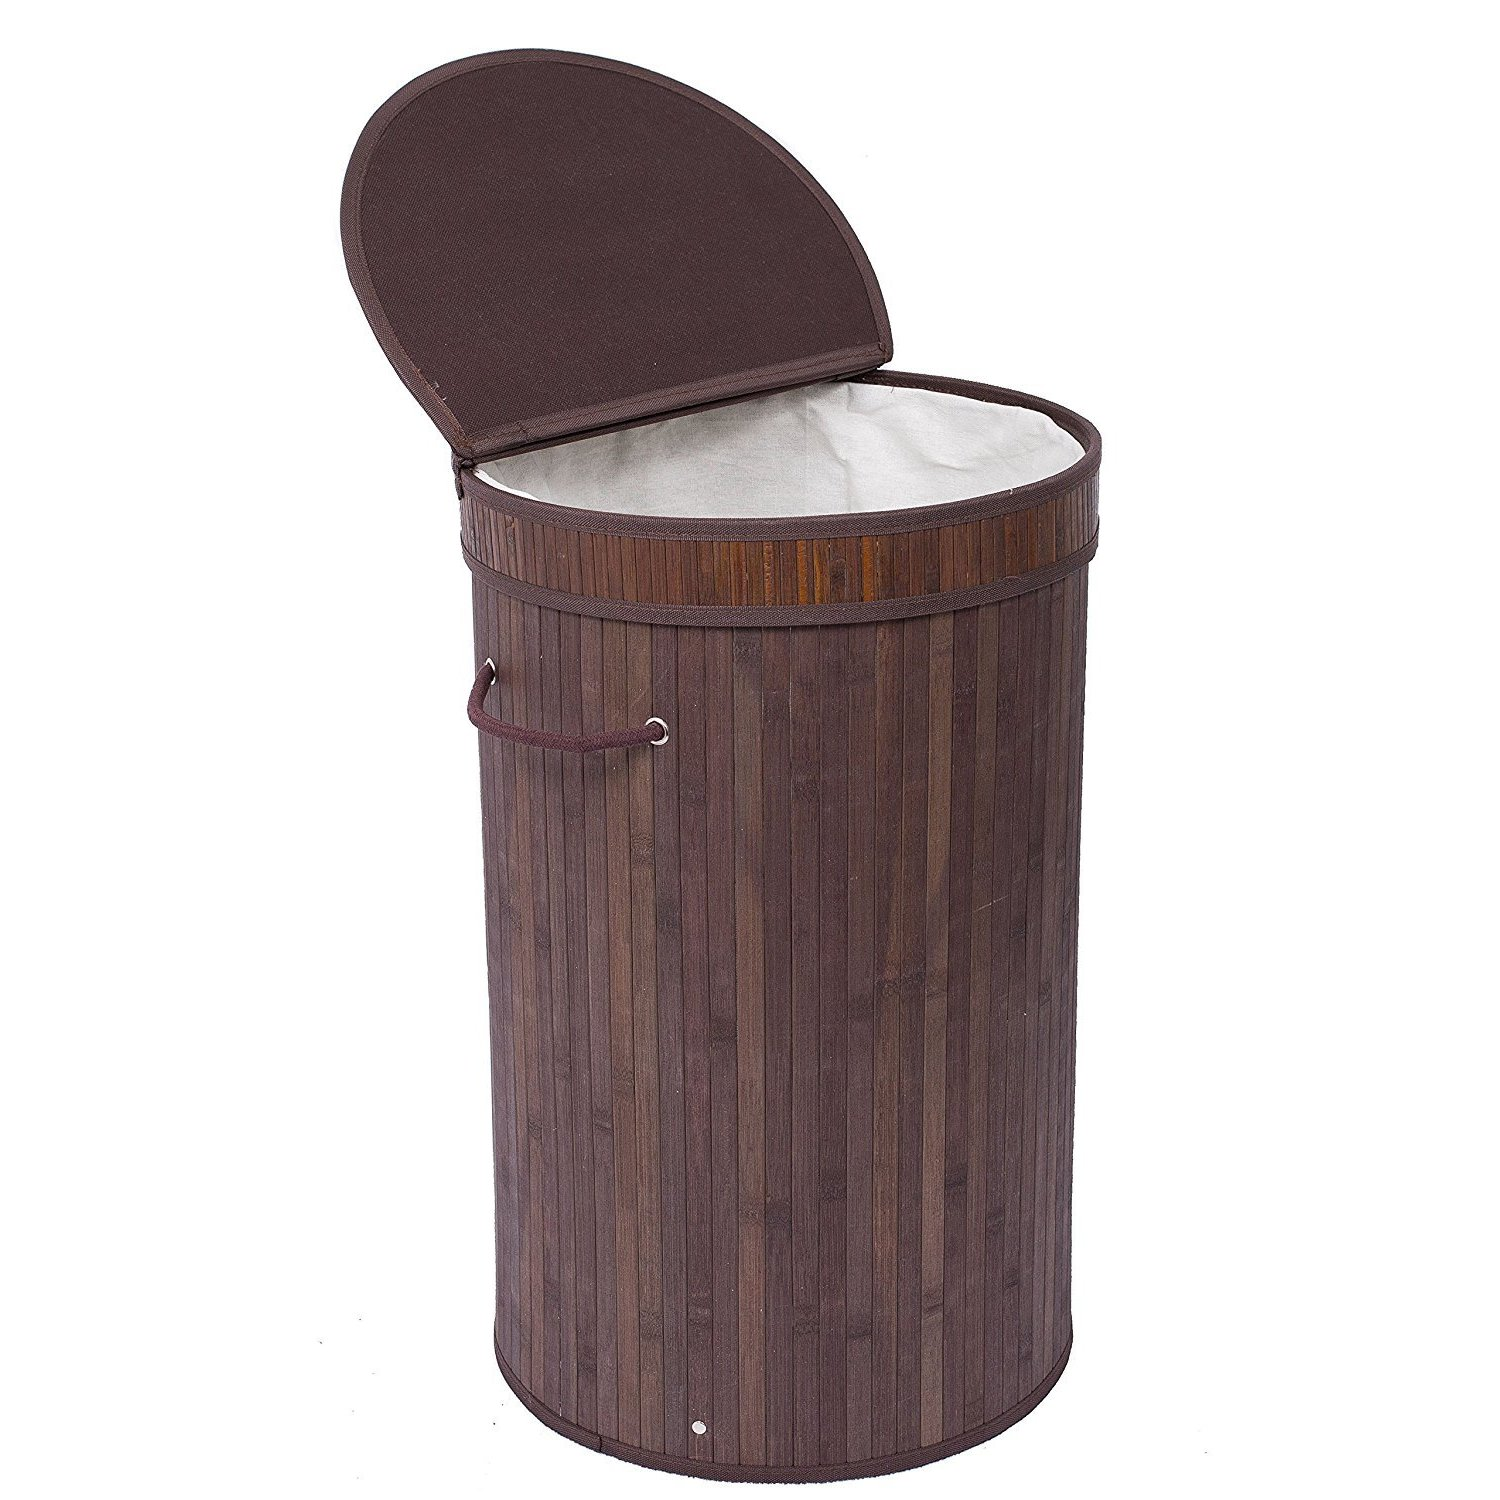 BirdRock Home Round Laundry Hamper with Lid and Cloth Lin...